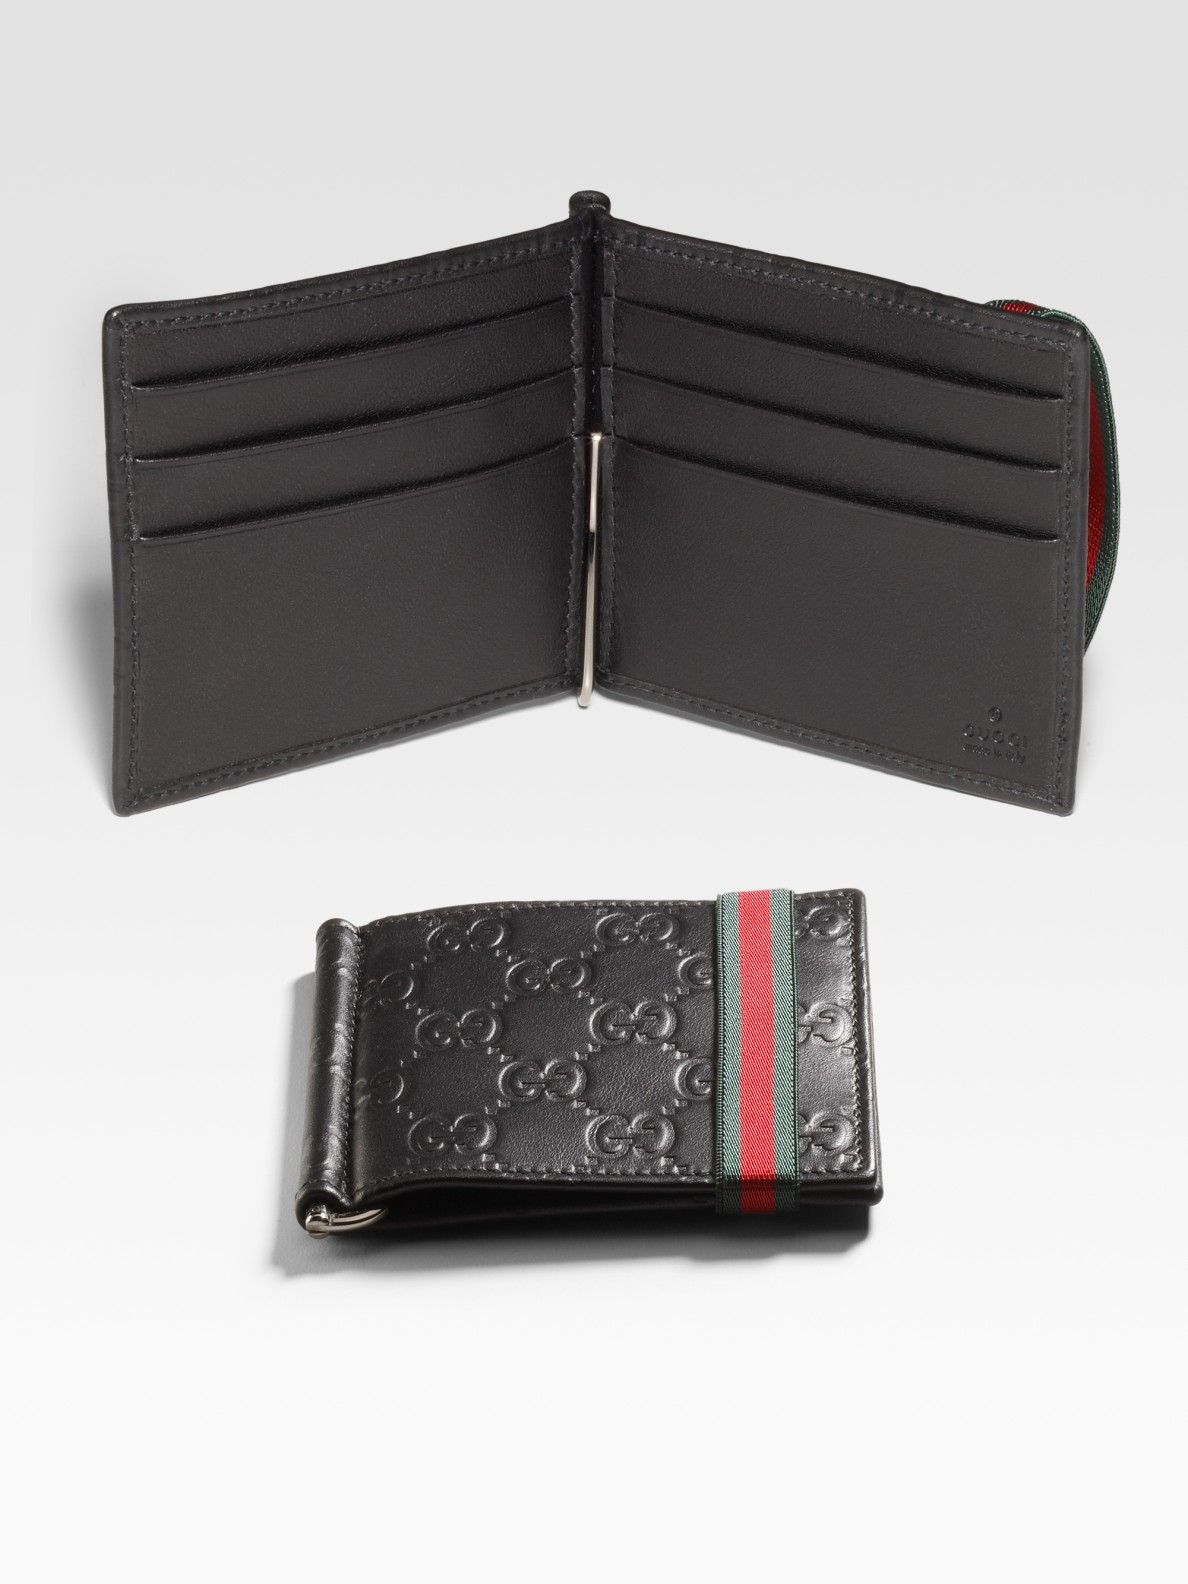 8ee90e0437aa Gucci Mens Wallet With Money Clip | Stanford Center for Opportunity ...